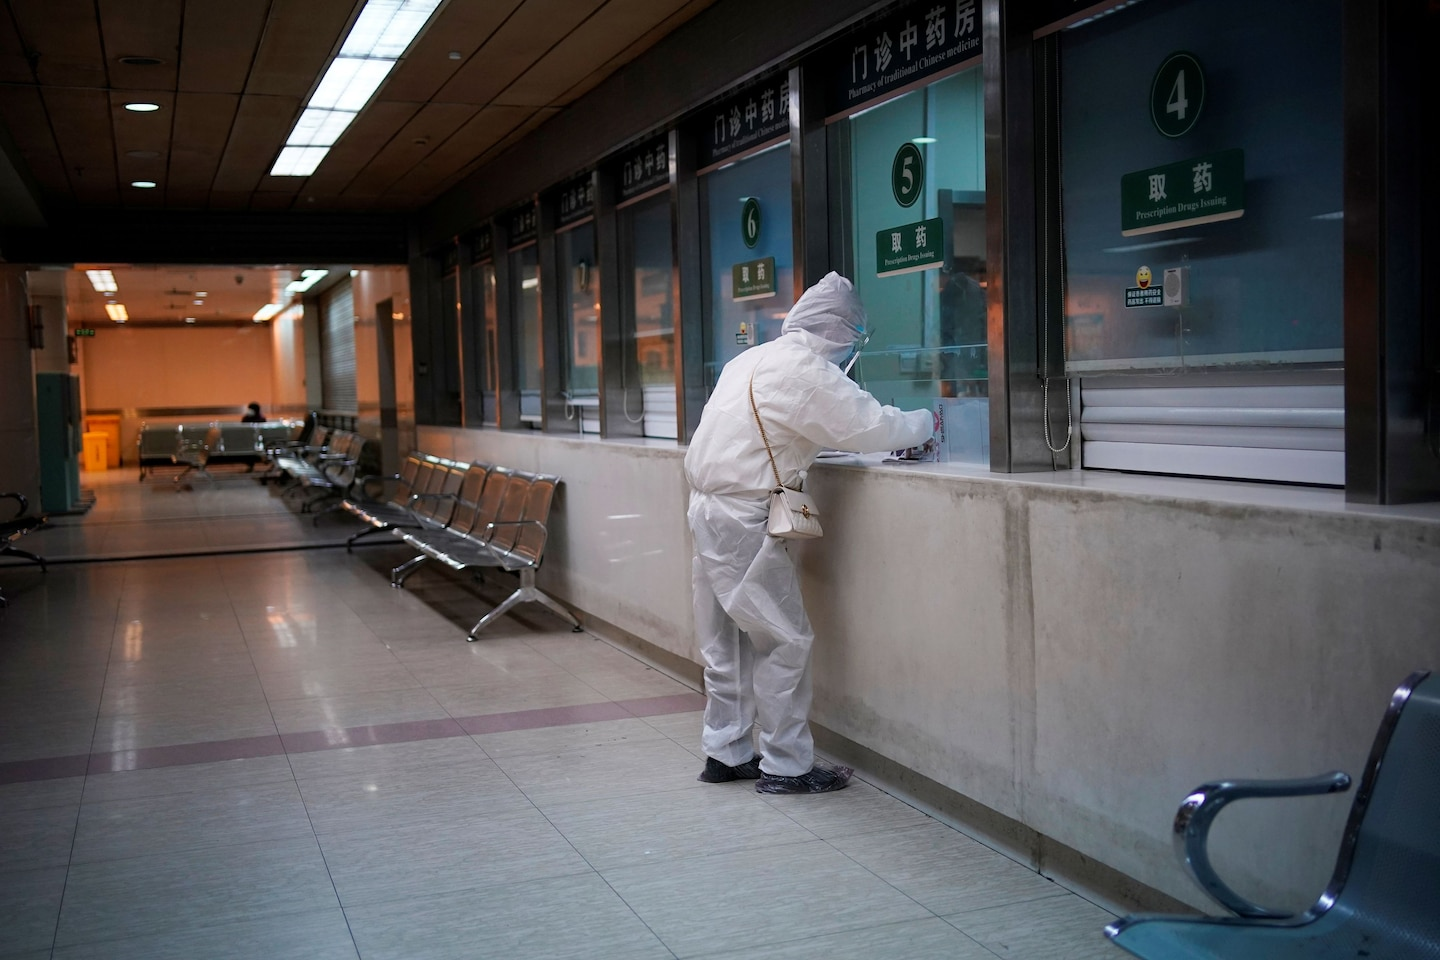 A woman wearing a protective suit at a hospital in Wuhan, China.